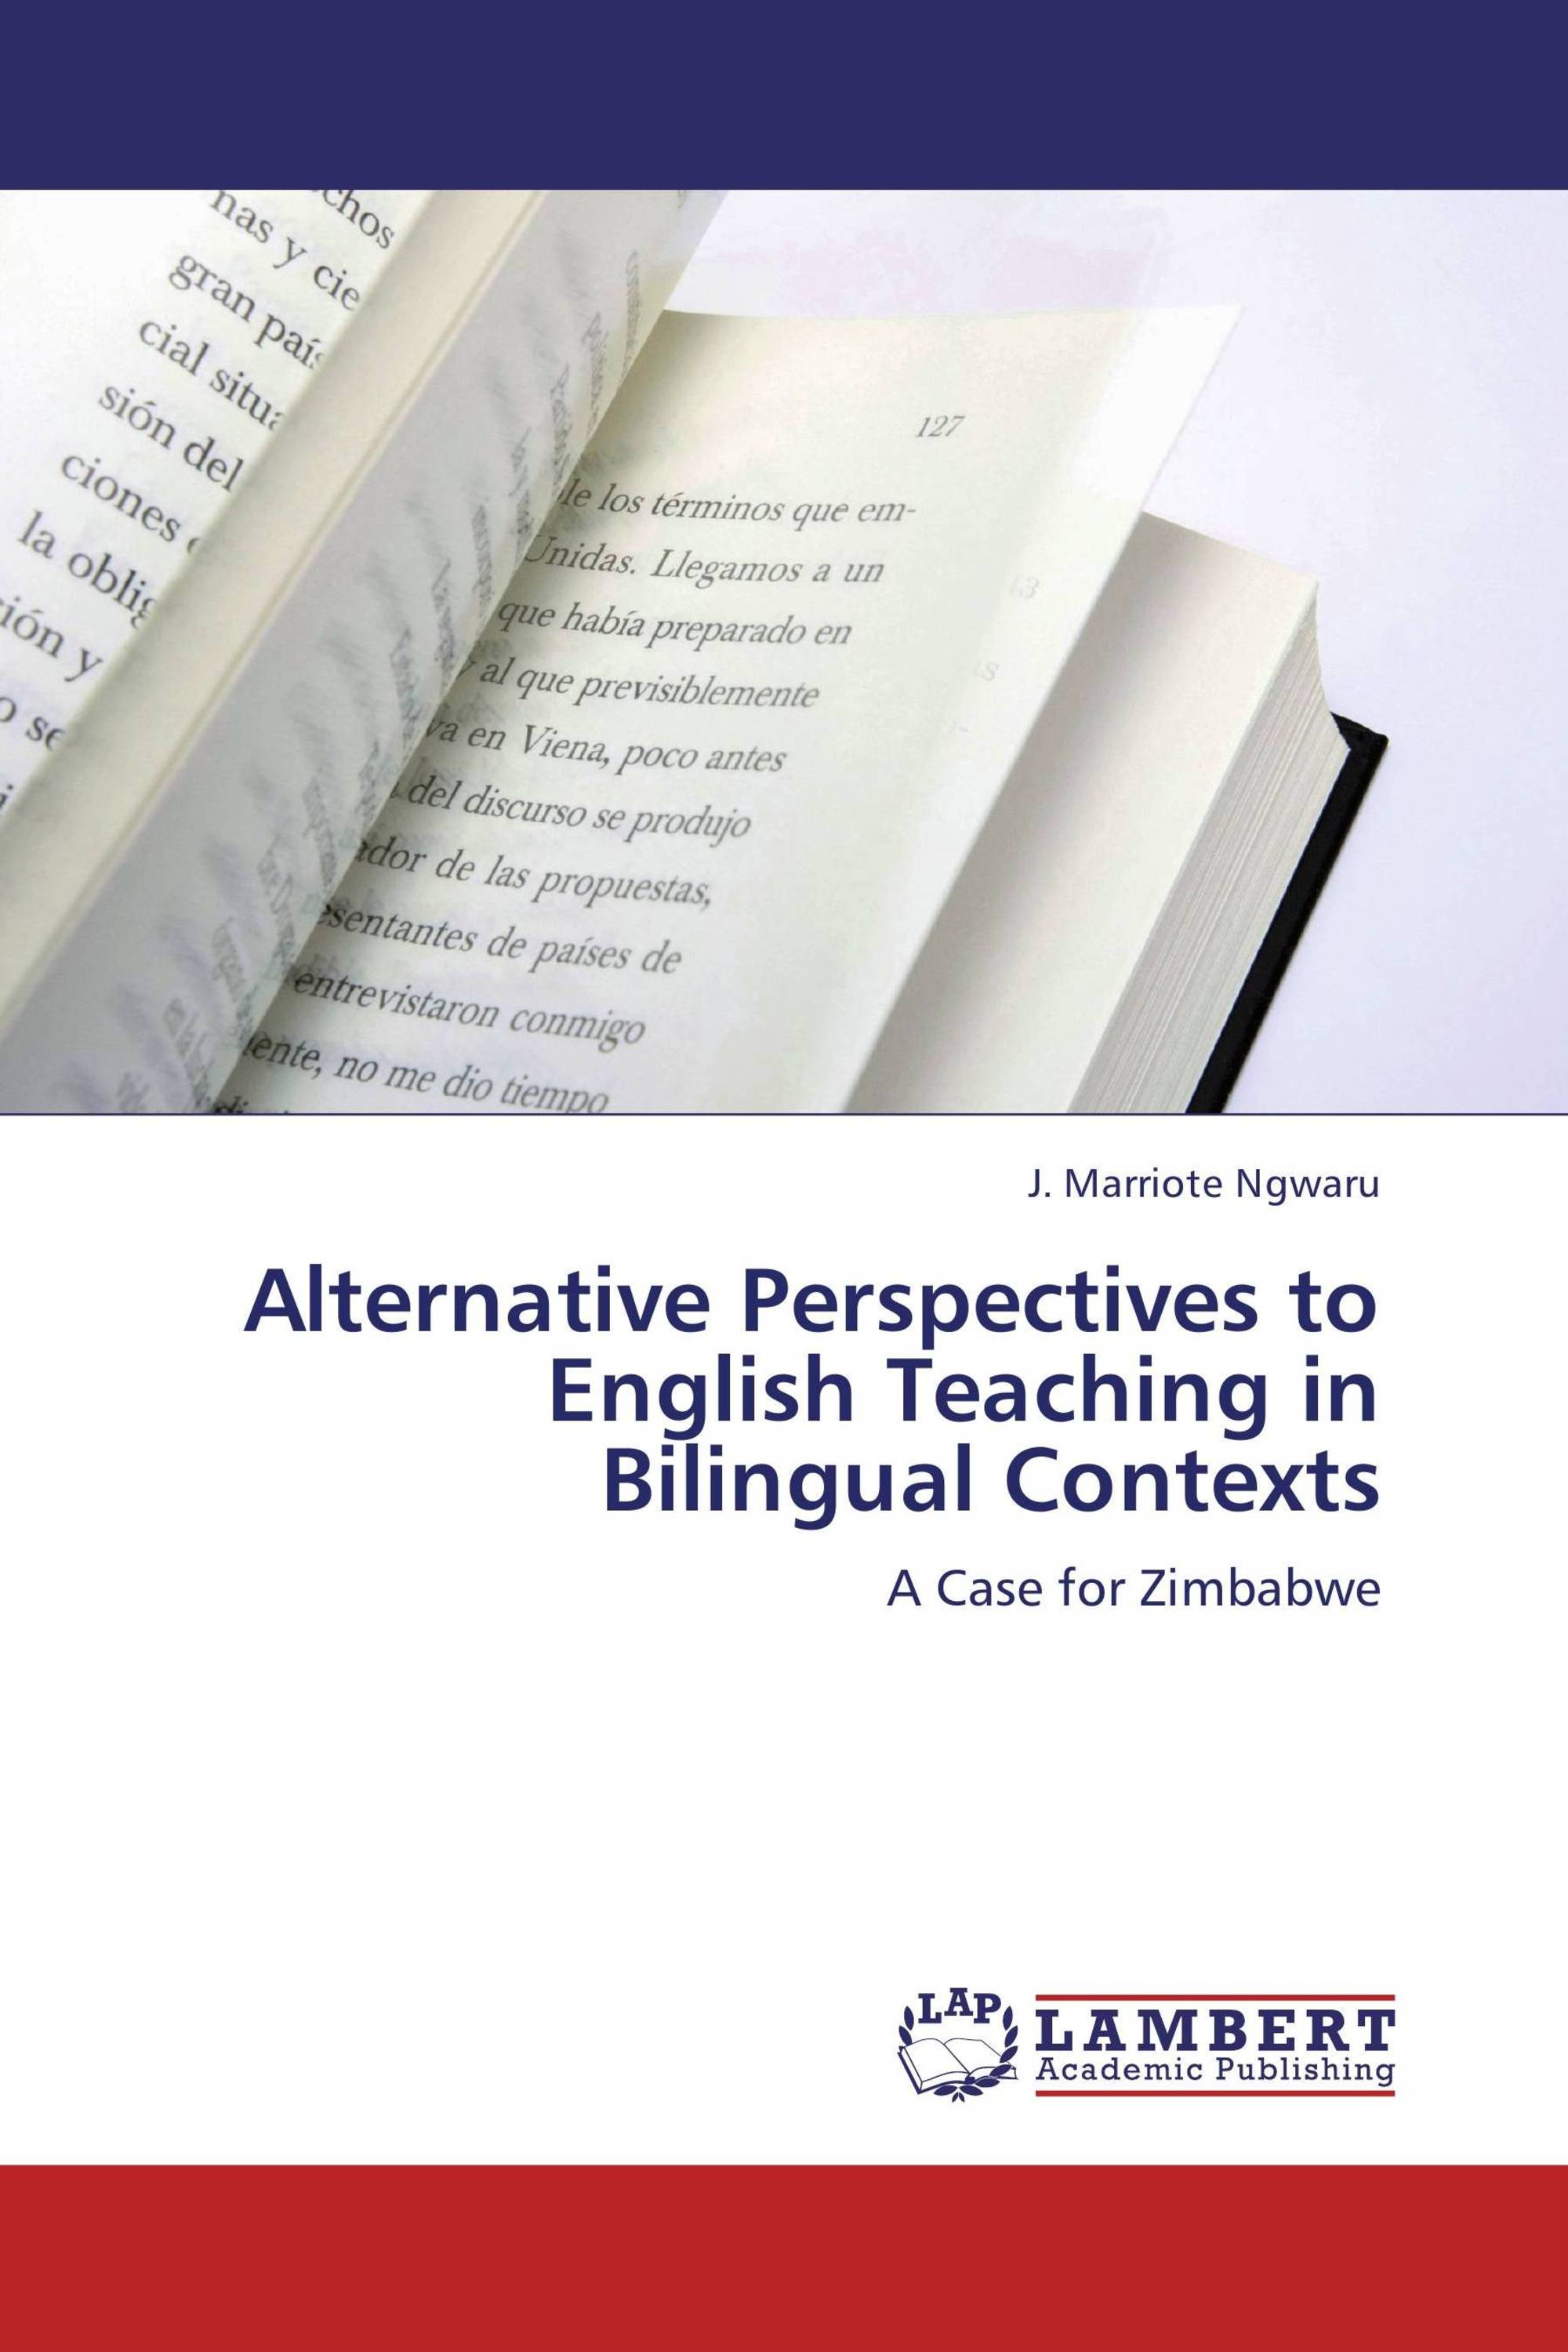 Alternative Perspectives to English Teaching in Bilingual Contexts